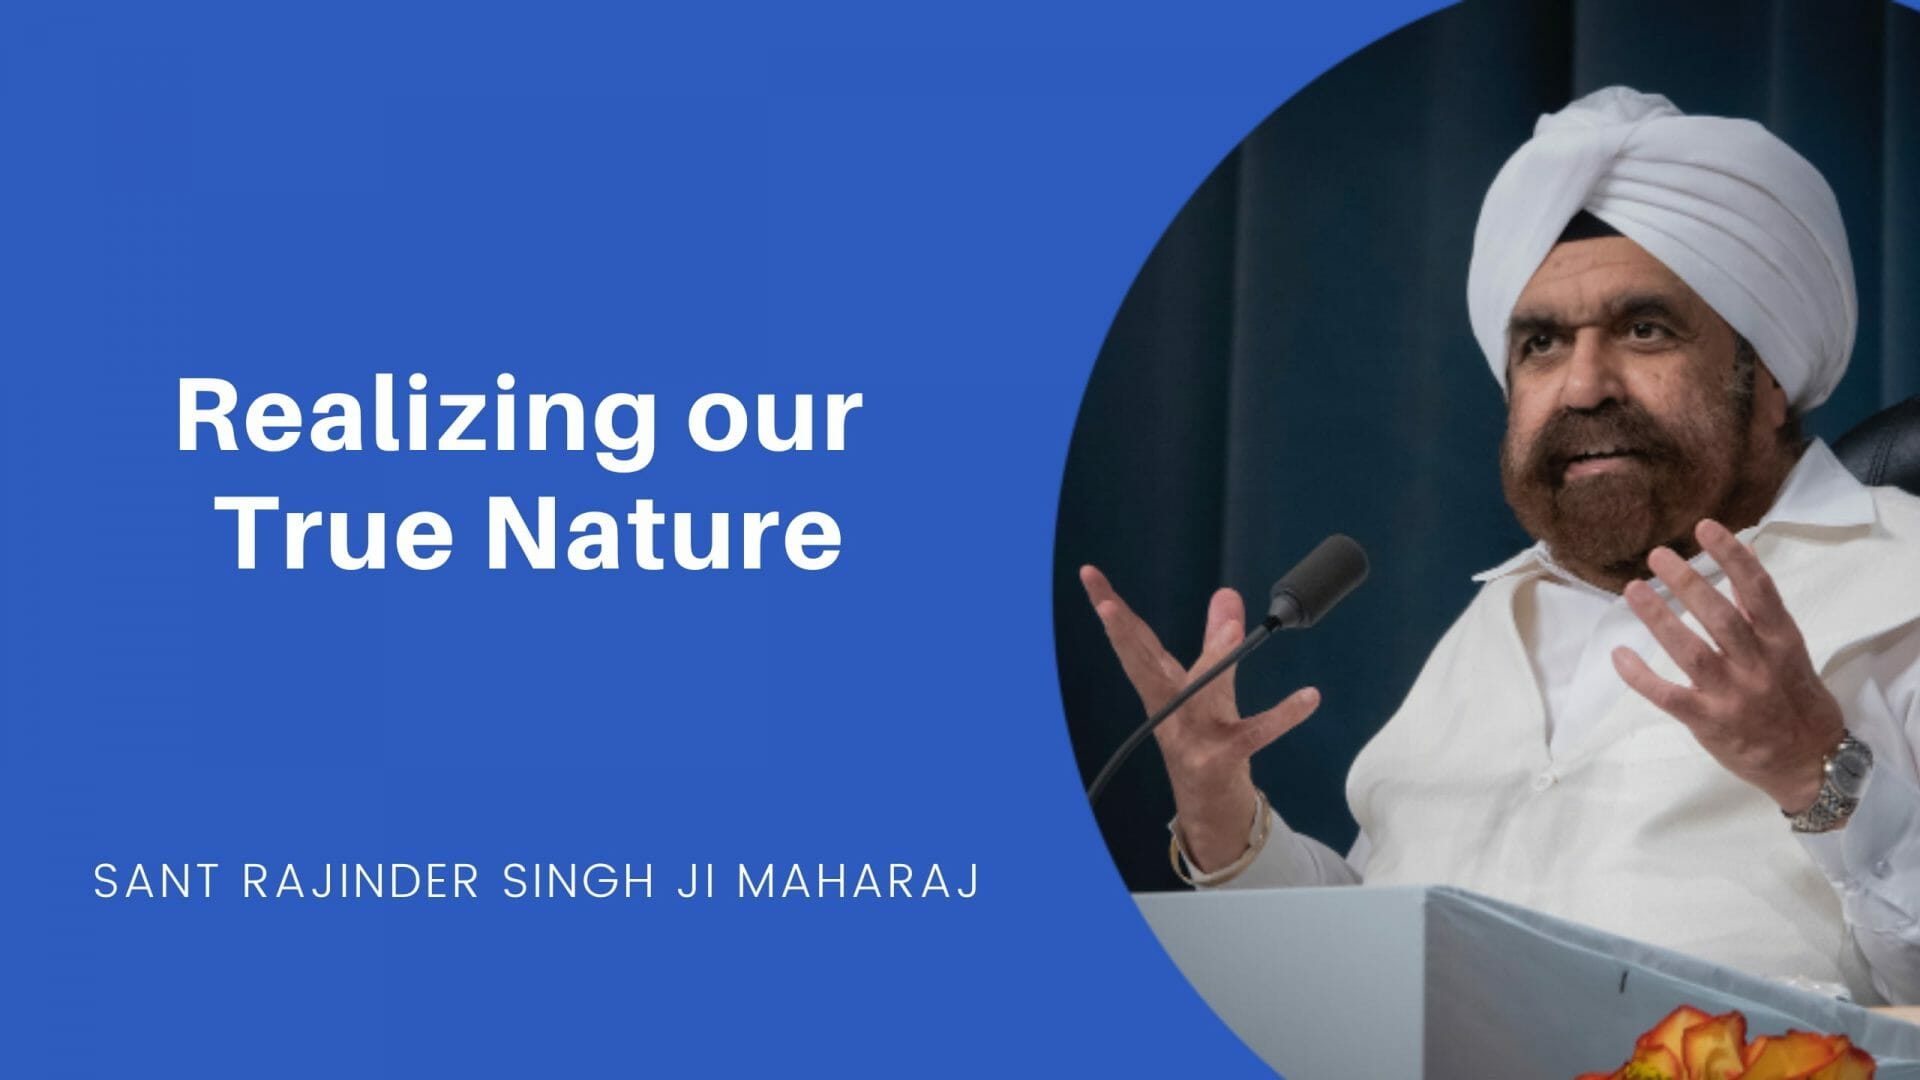 Cover slide for Realizing Our True Nature - An excerpt of a talk by Sant Rajinder Singh Ji Maharj